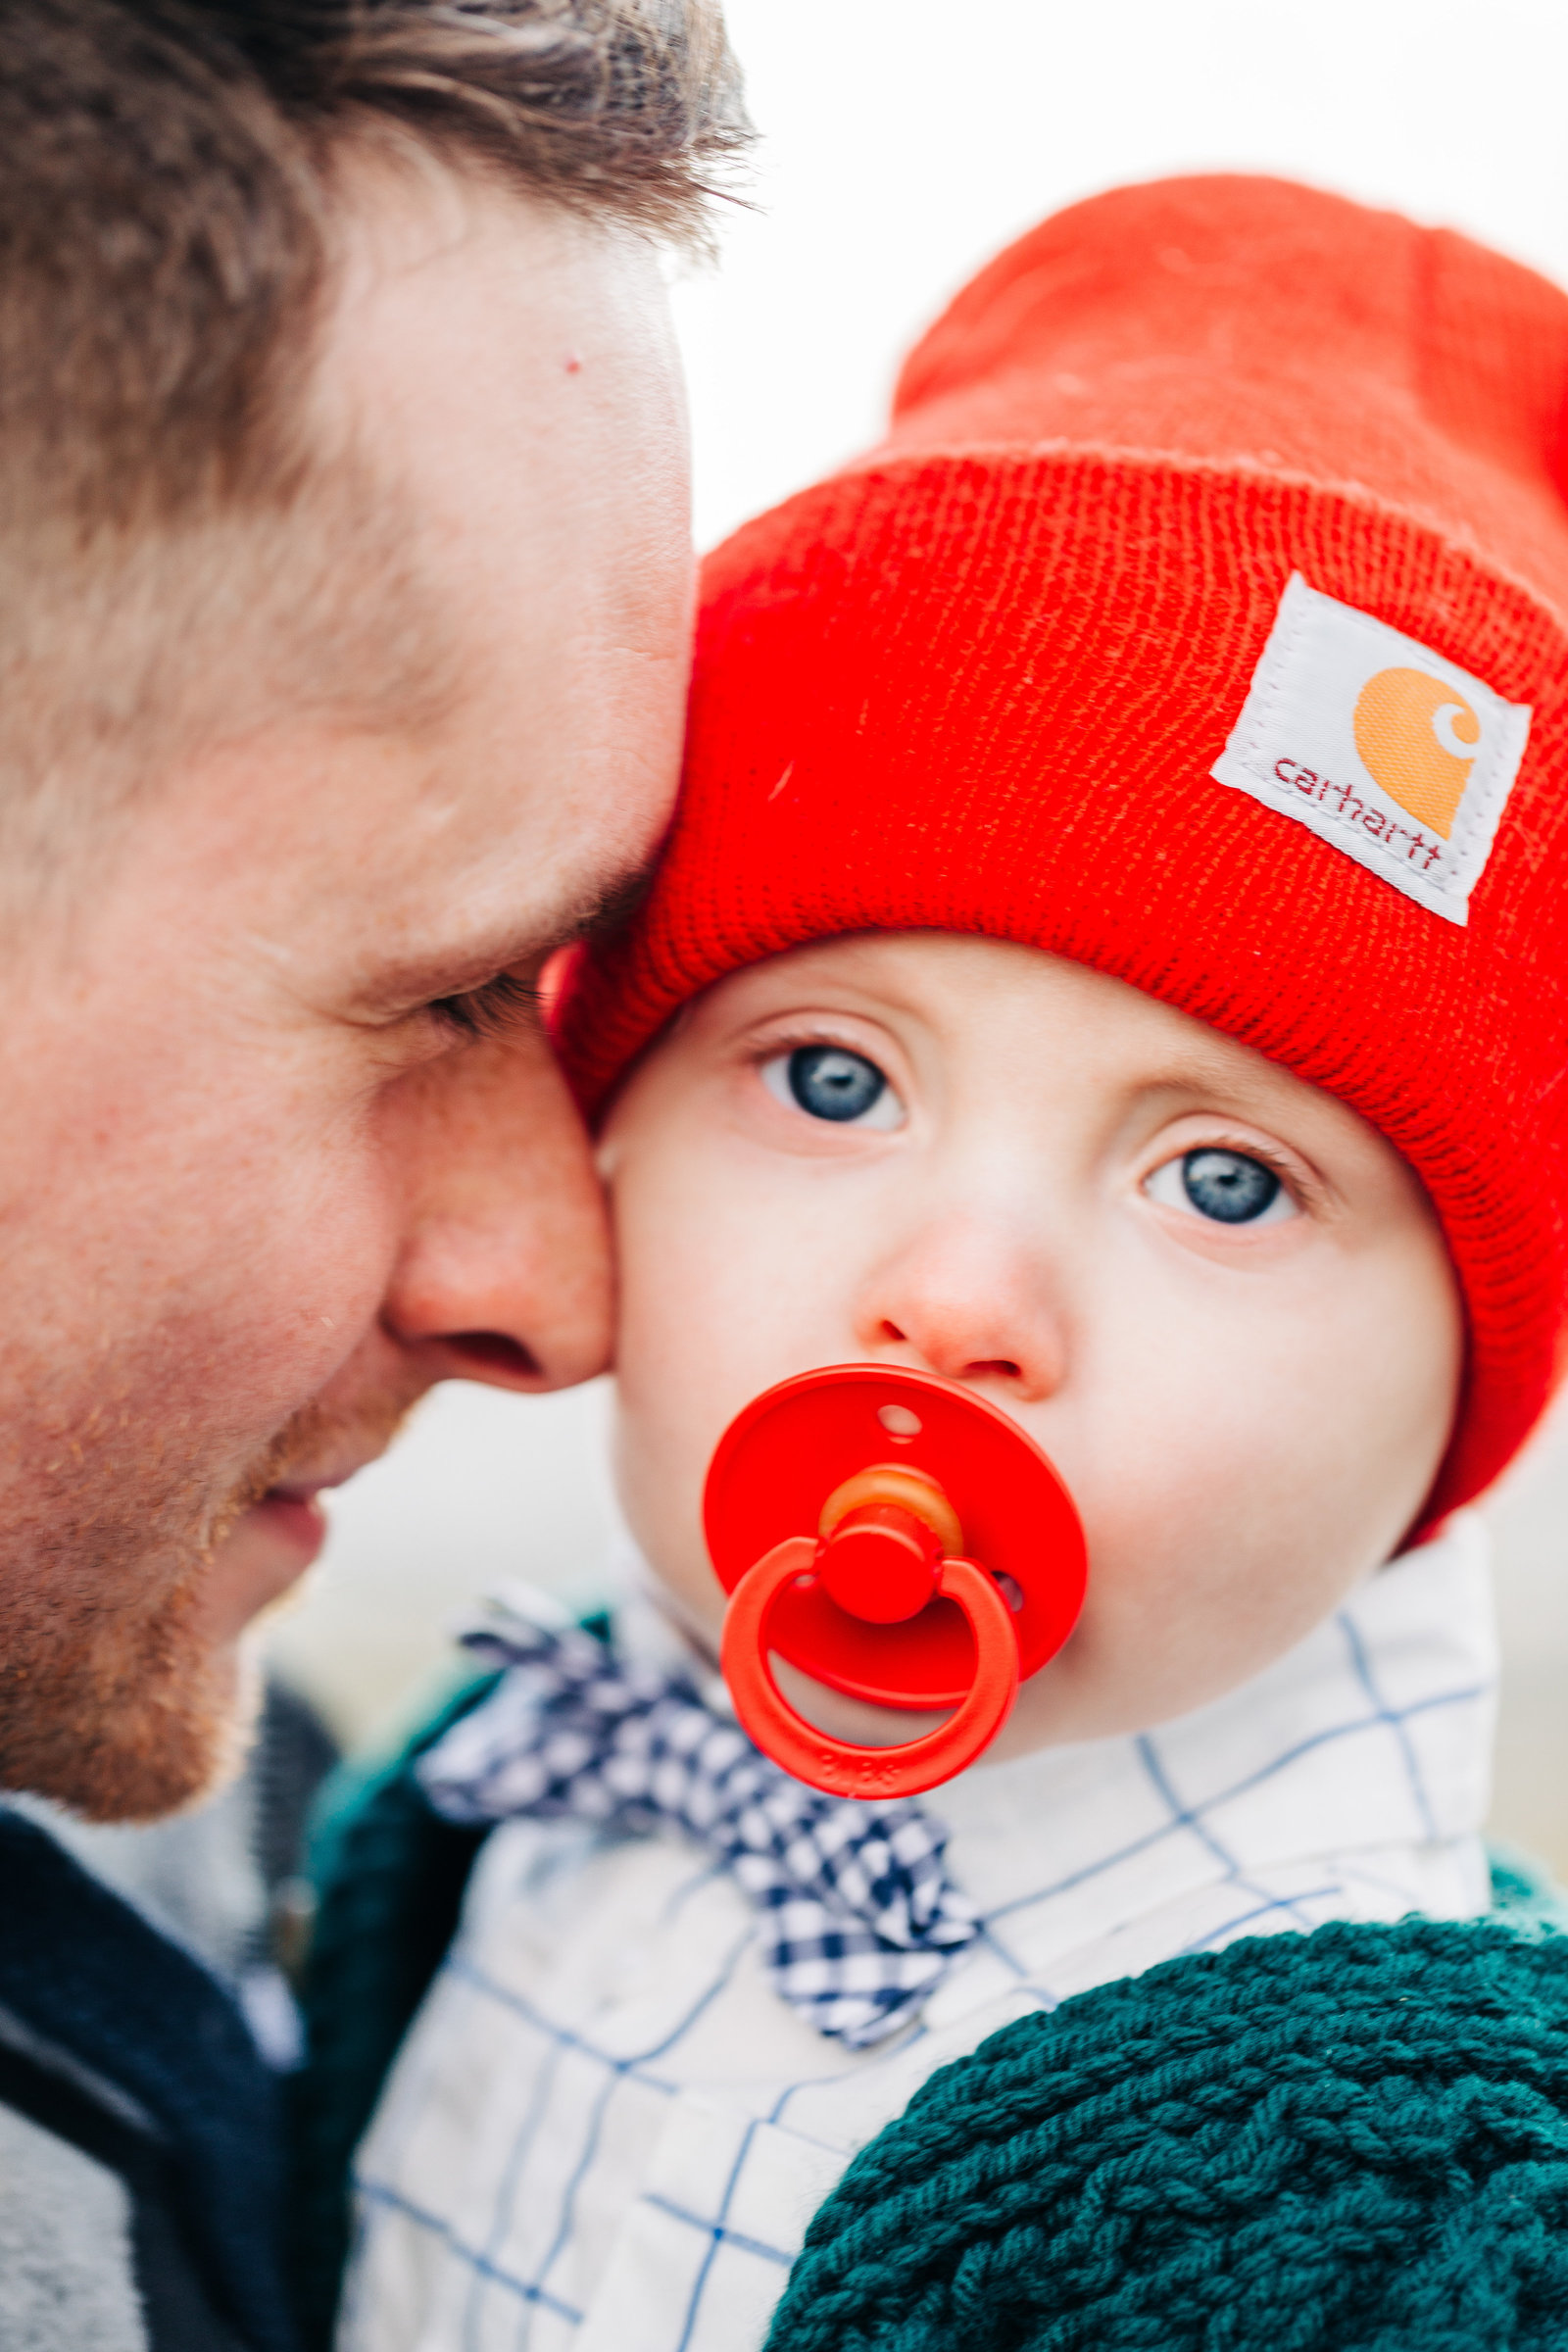 Dad snuggles his  baby who is wearing a sweater, red Carhartt hat and bowtie, sucking on a pacifier